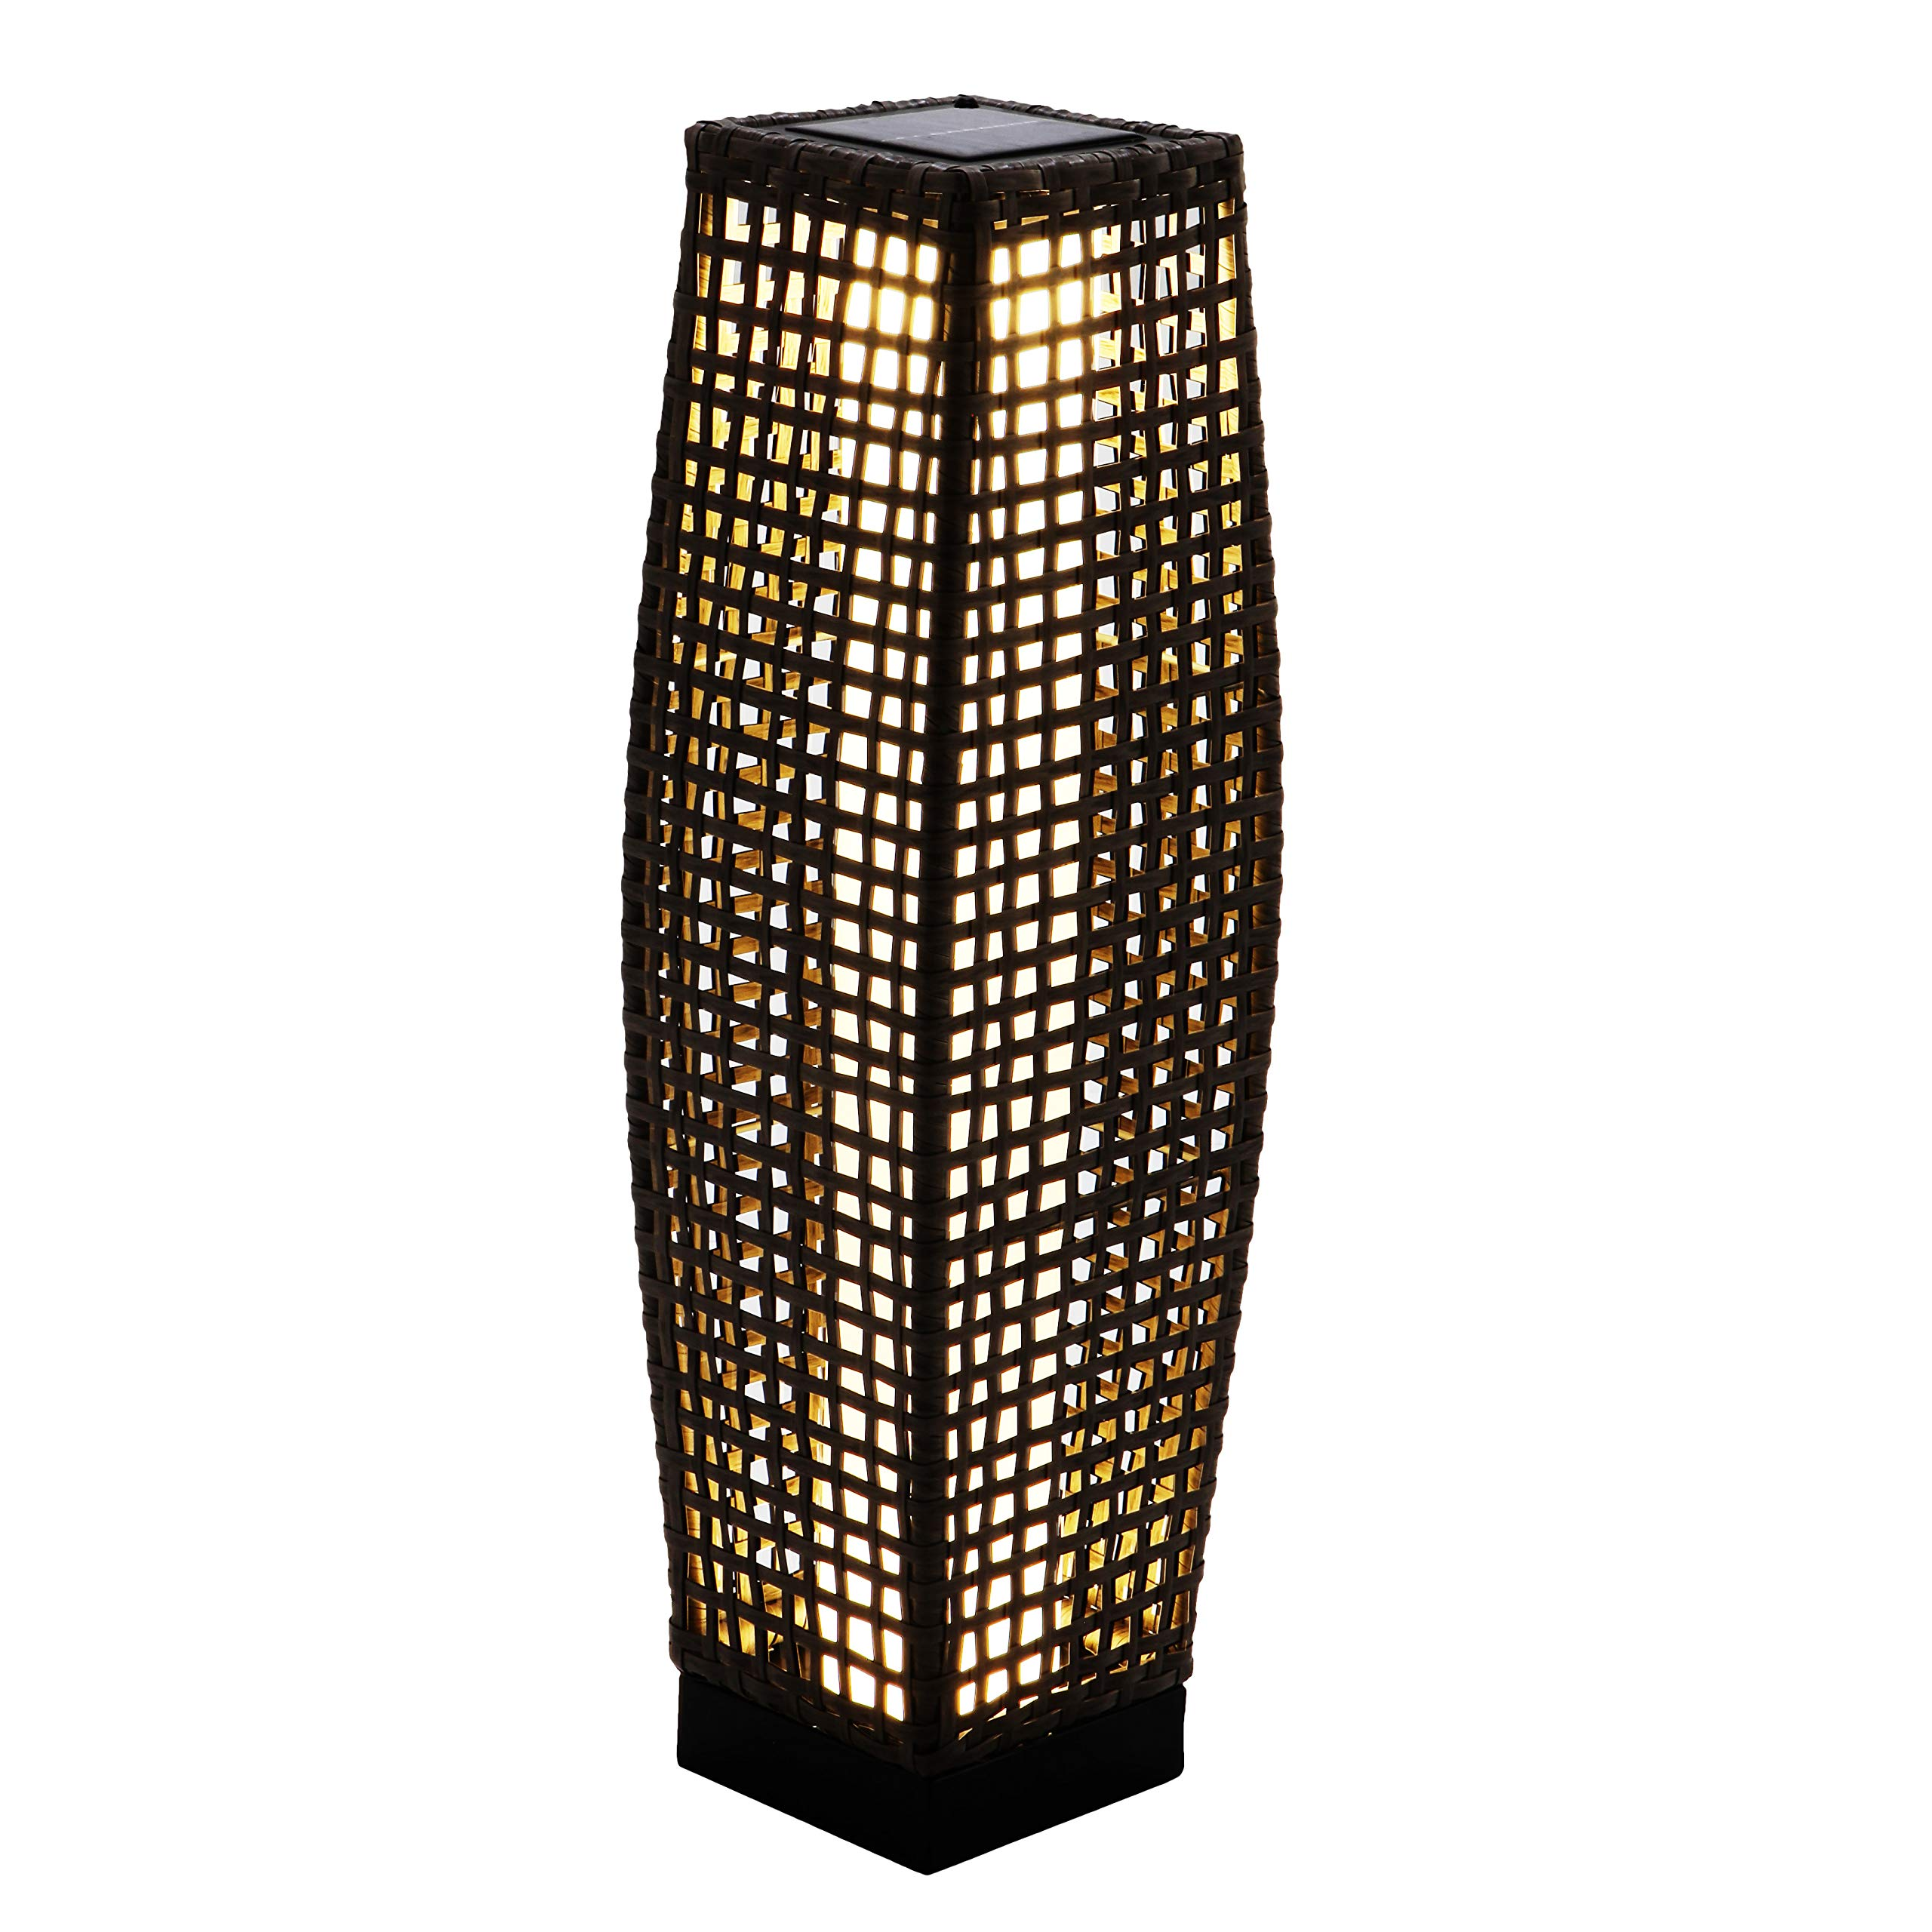 Grand Patio Bright Outdoor Floor Lamp Large-Sized, Solar Powered Lamp Light, Weather-Resistant Rattan Floor Lamp for Patio, Deck, Path and Garden